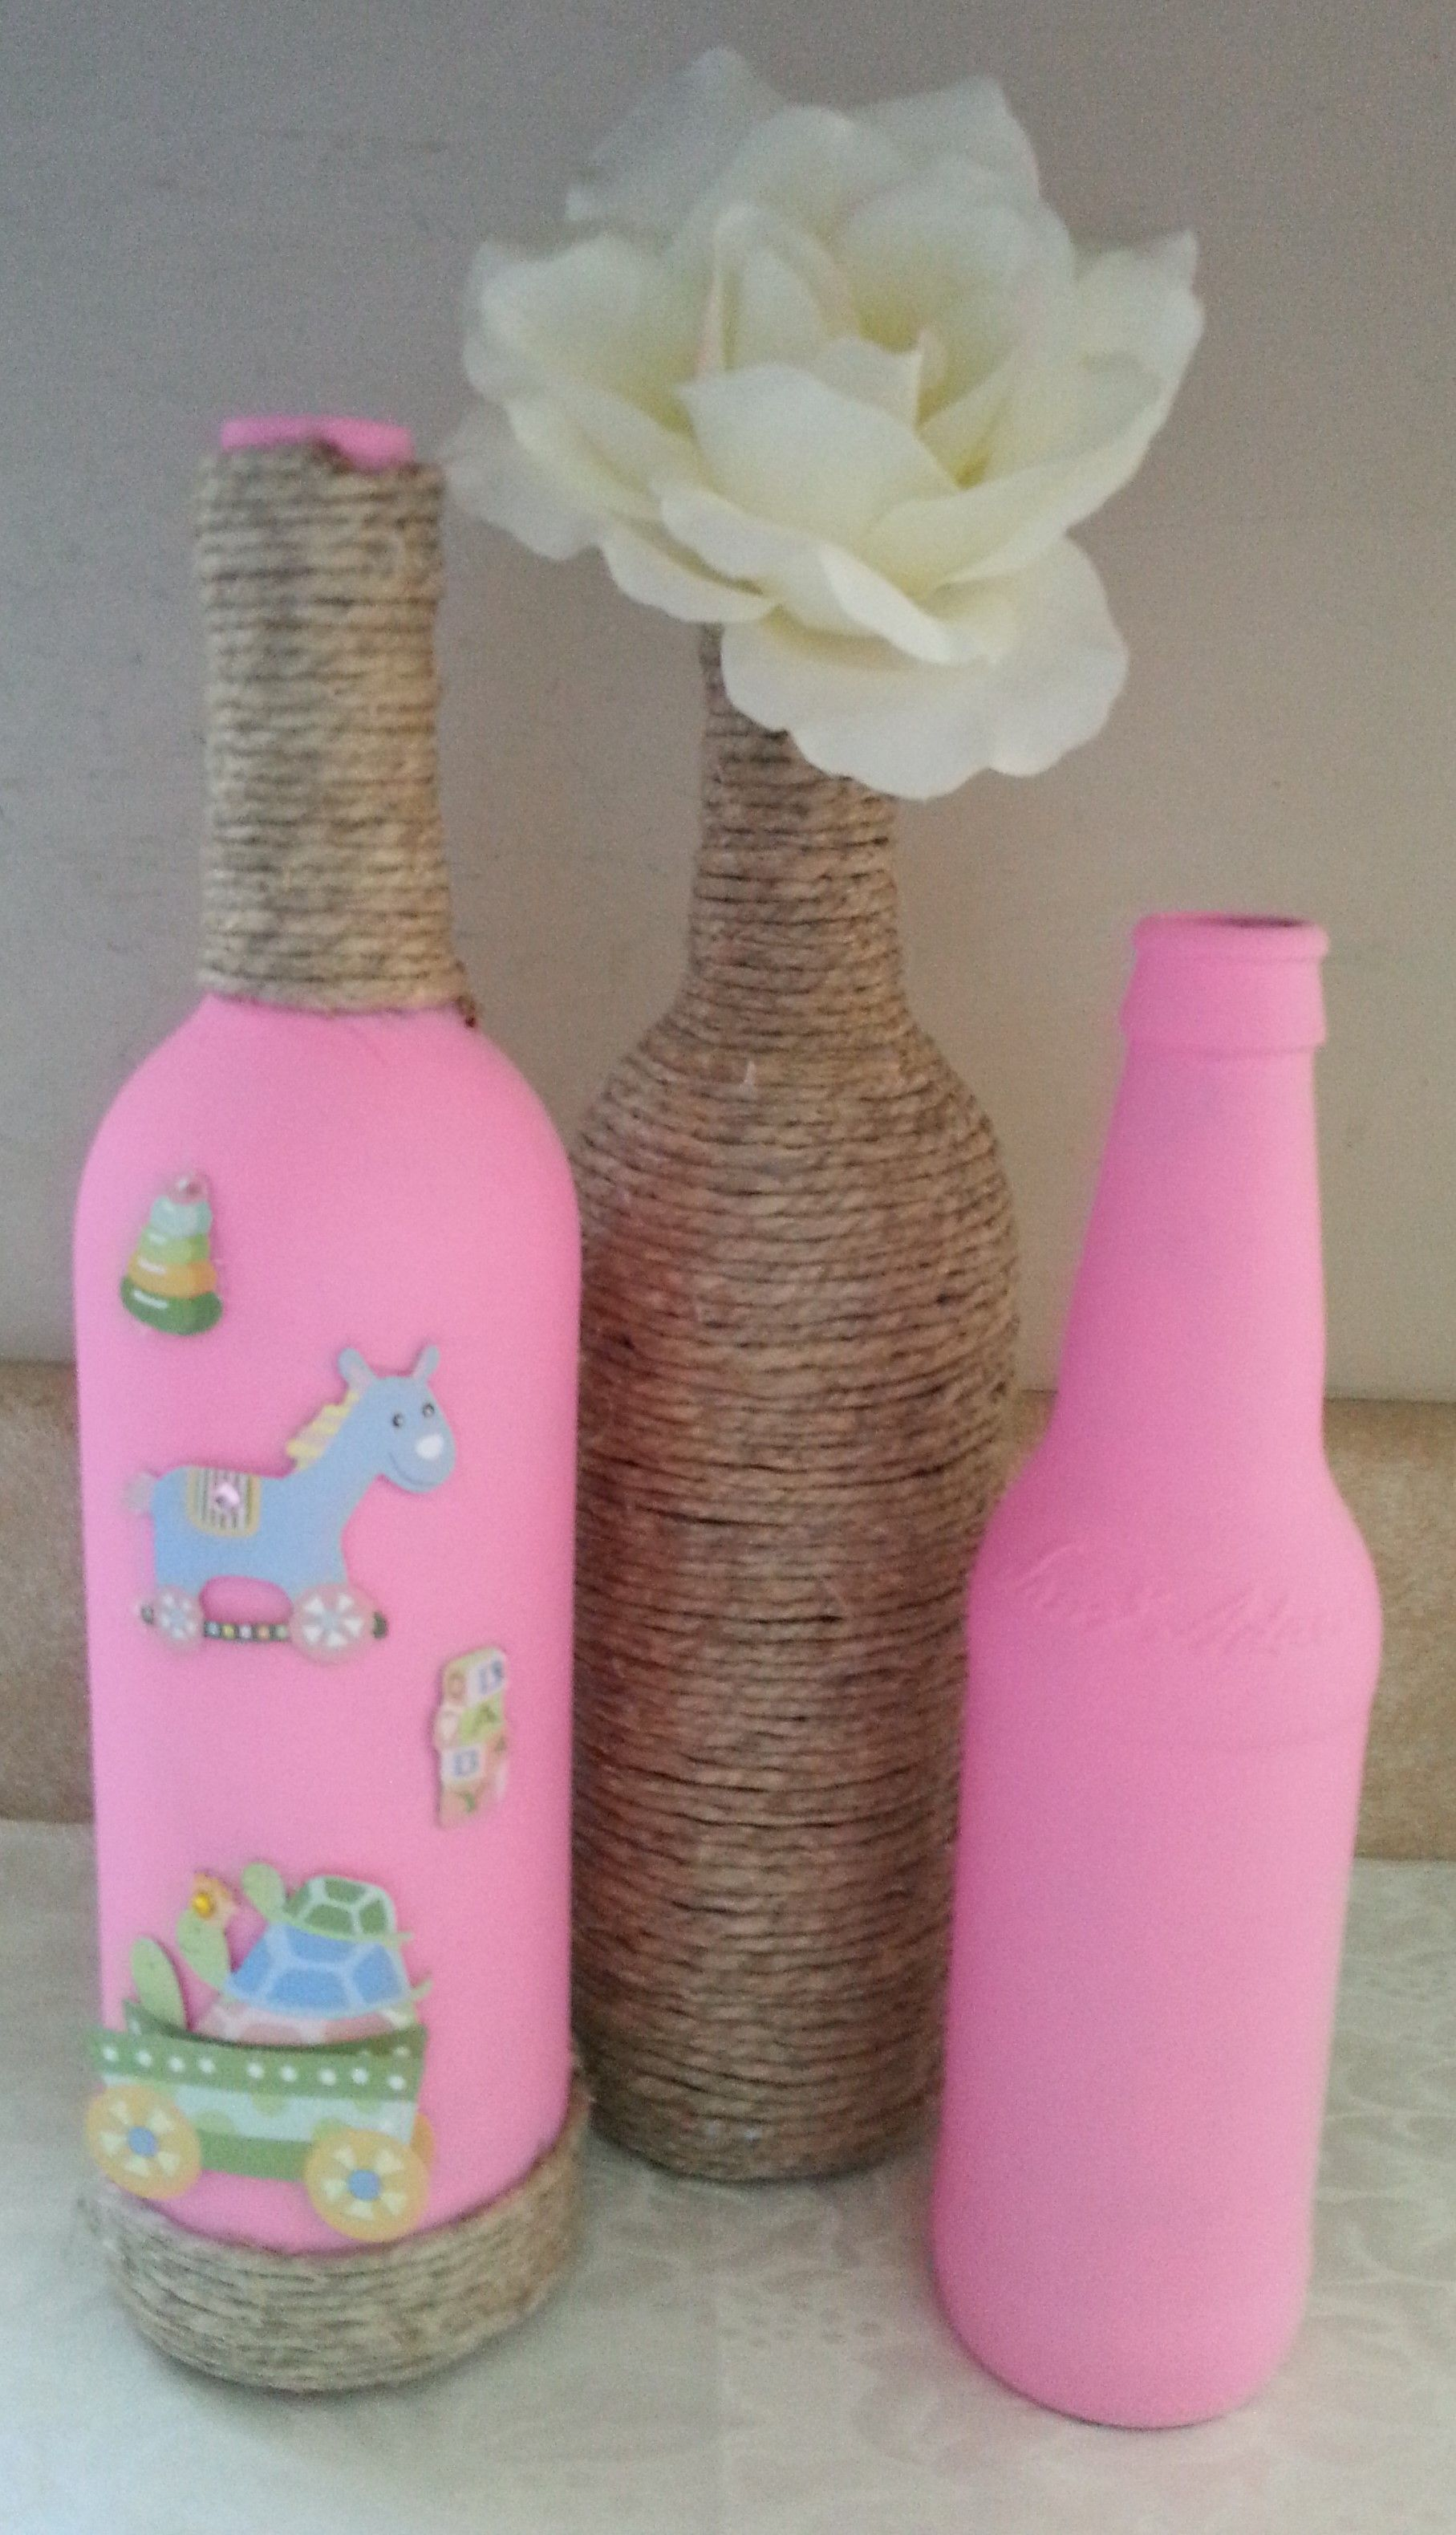 Wine Bottle Baby Shower Centerpiece Girl Upcycled Home Decor